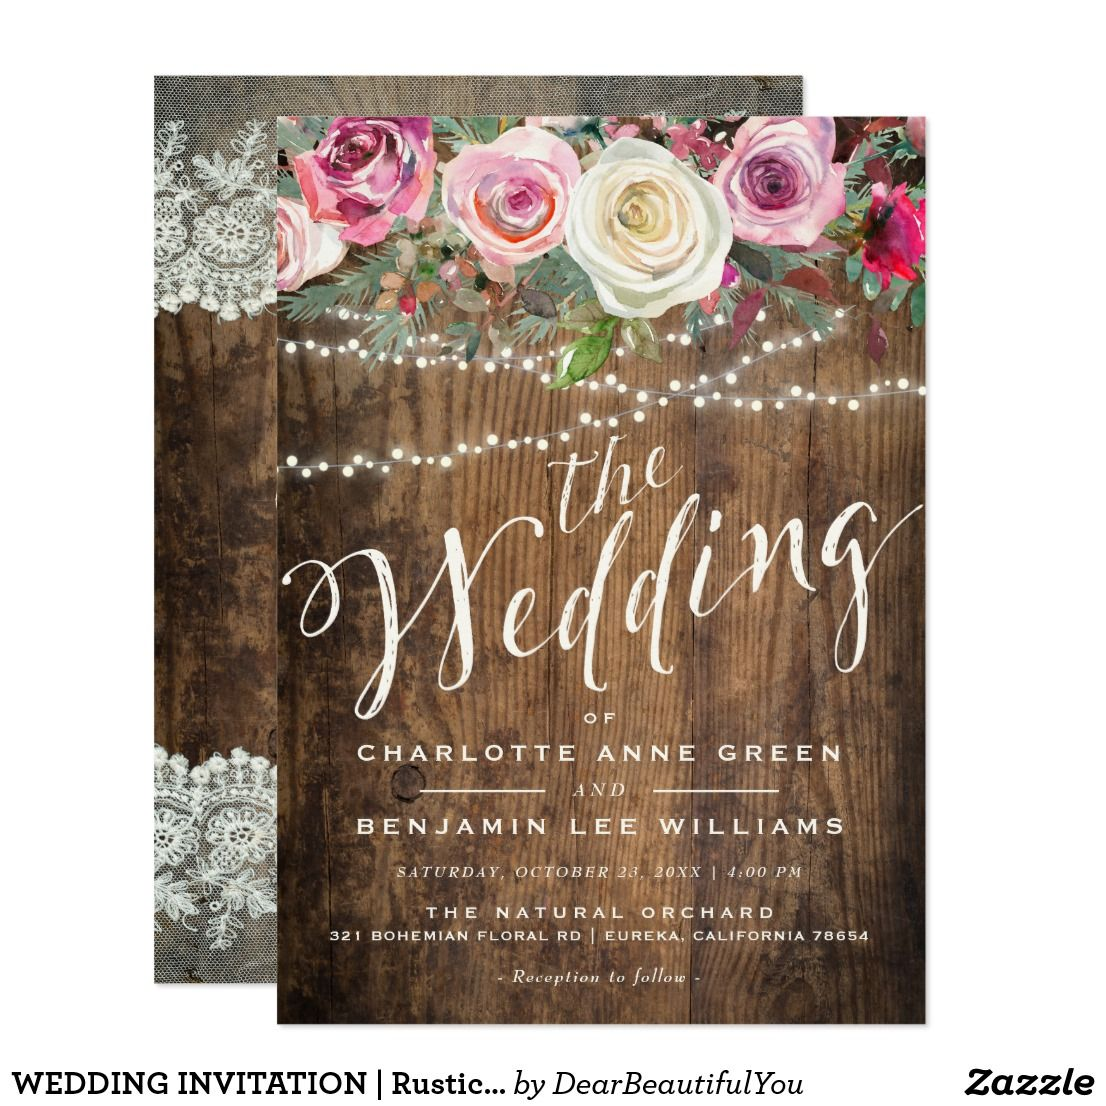 WEDDING INVITATION | Rustic Wood Floral Lights Celebrate your ...